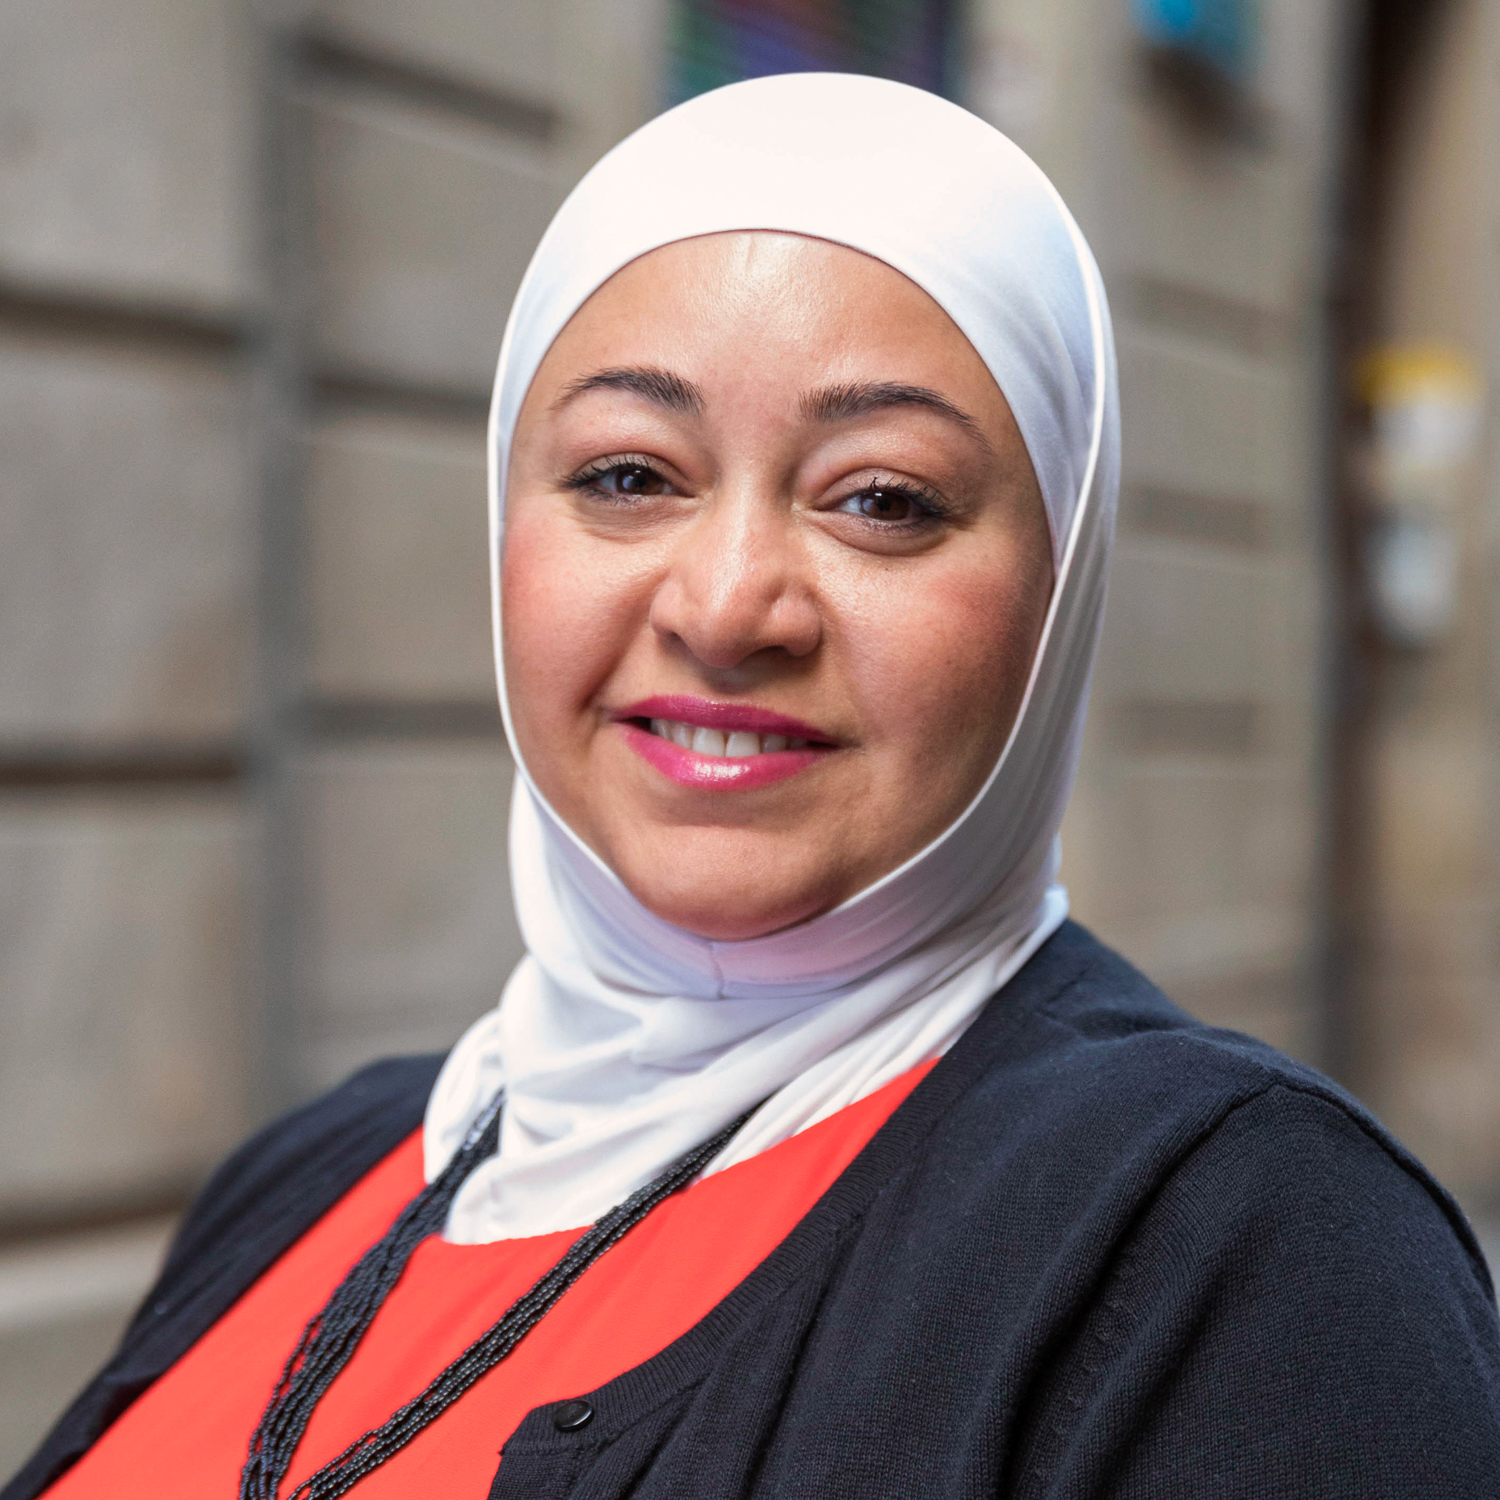 Shaza Rihawi, member of the European Migrant Advisory Board